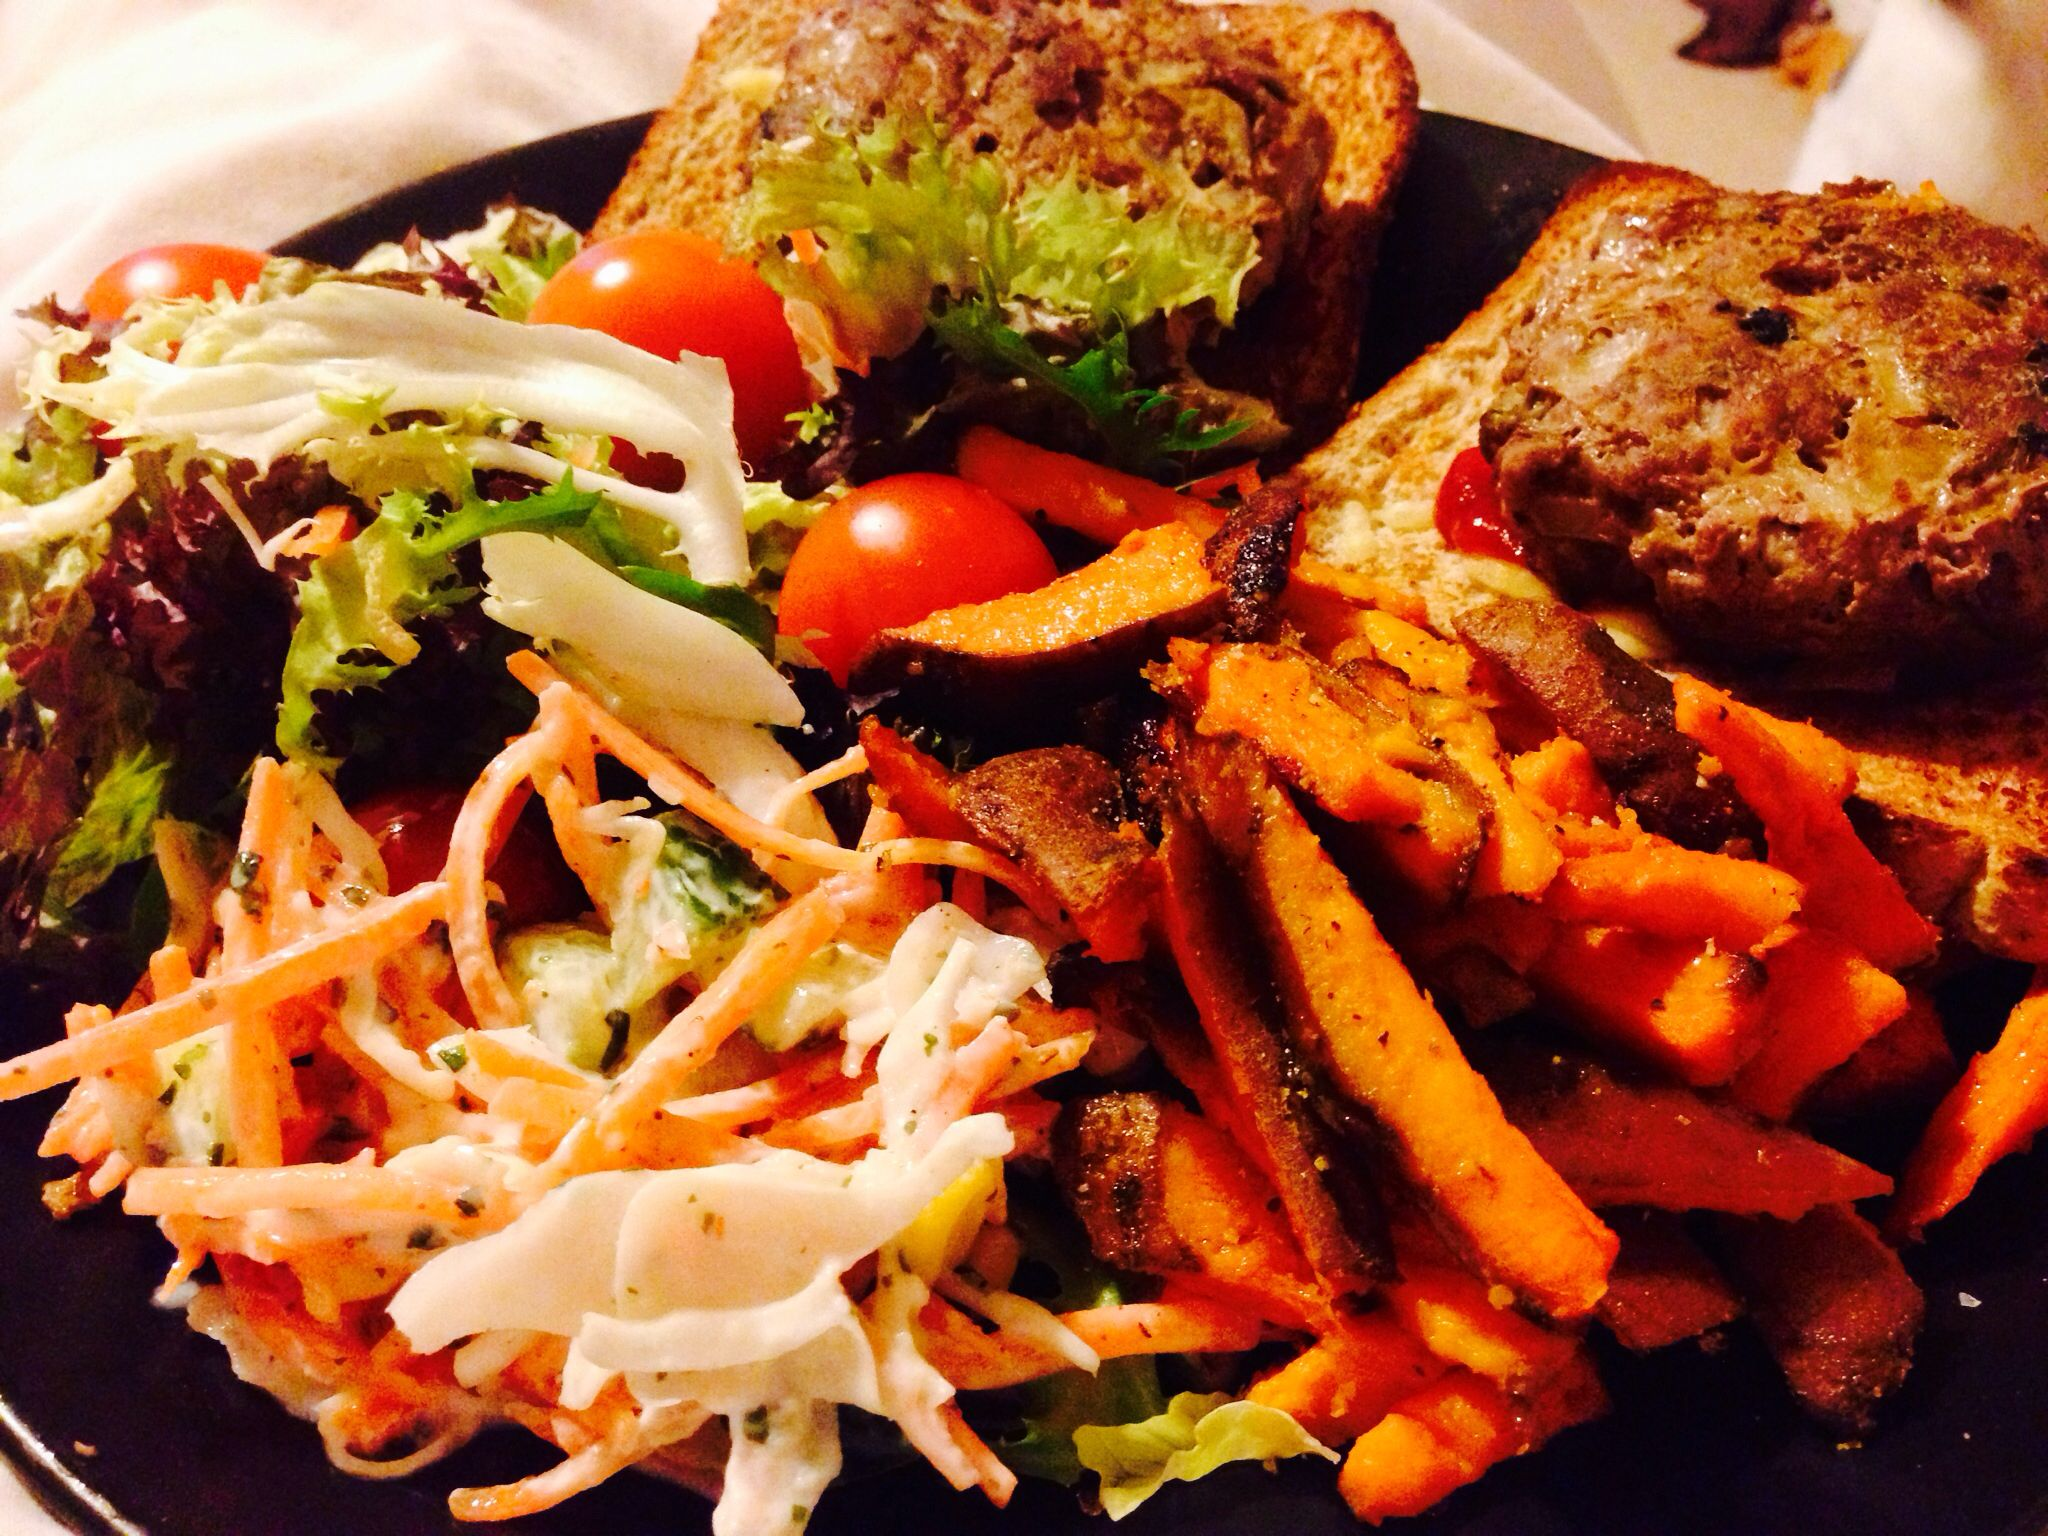 Homemade burgers, sweet potato fries, coleslaw, wholemeal bread and salad.   Burgers  Lean mince beef, (500g makes 4 burgers) 1 egg, 1 onion finely chopped, 2 tablespoons finely chopped coriander,  1/2 teaspoon garlic powder, 1/2 teaspoon chilli powder, seasoning. Mix together, shape into burgers, bake 40 mins.  Sweet potato fries  1 large sweet potato thinly chopped, boil 10 mins, olive oil, grill 20 mins.  Coleslaw  1Grated carrot, grated cabbage, coriander, fat free natural yogurt.